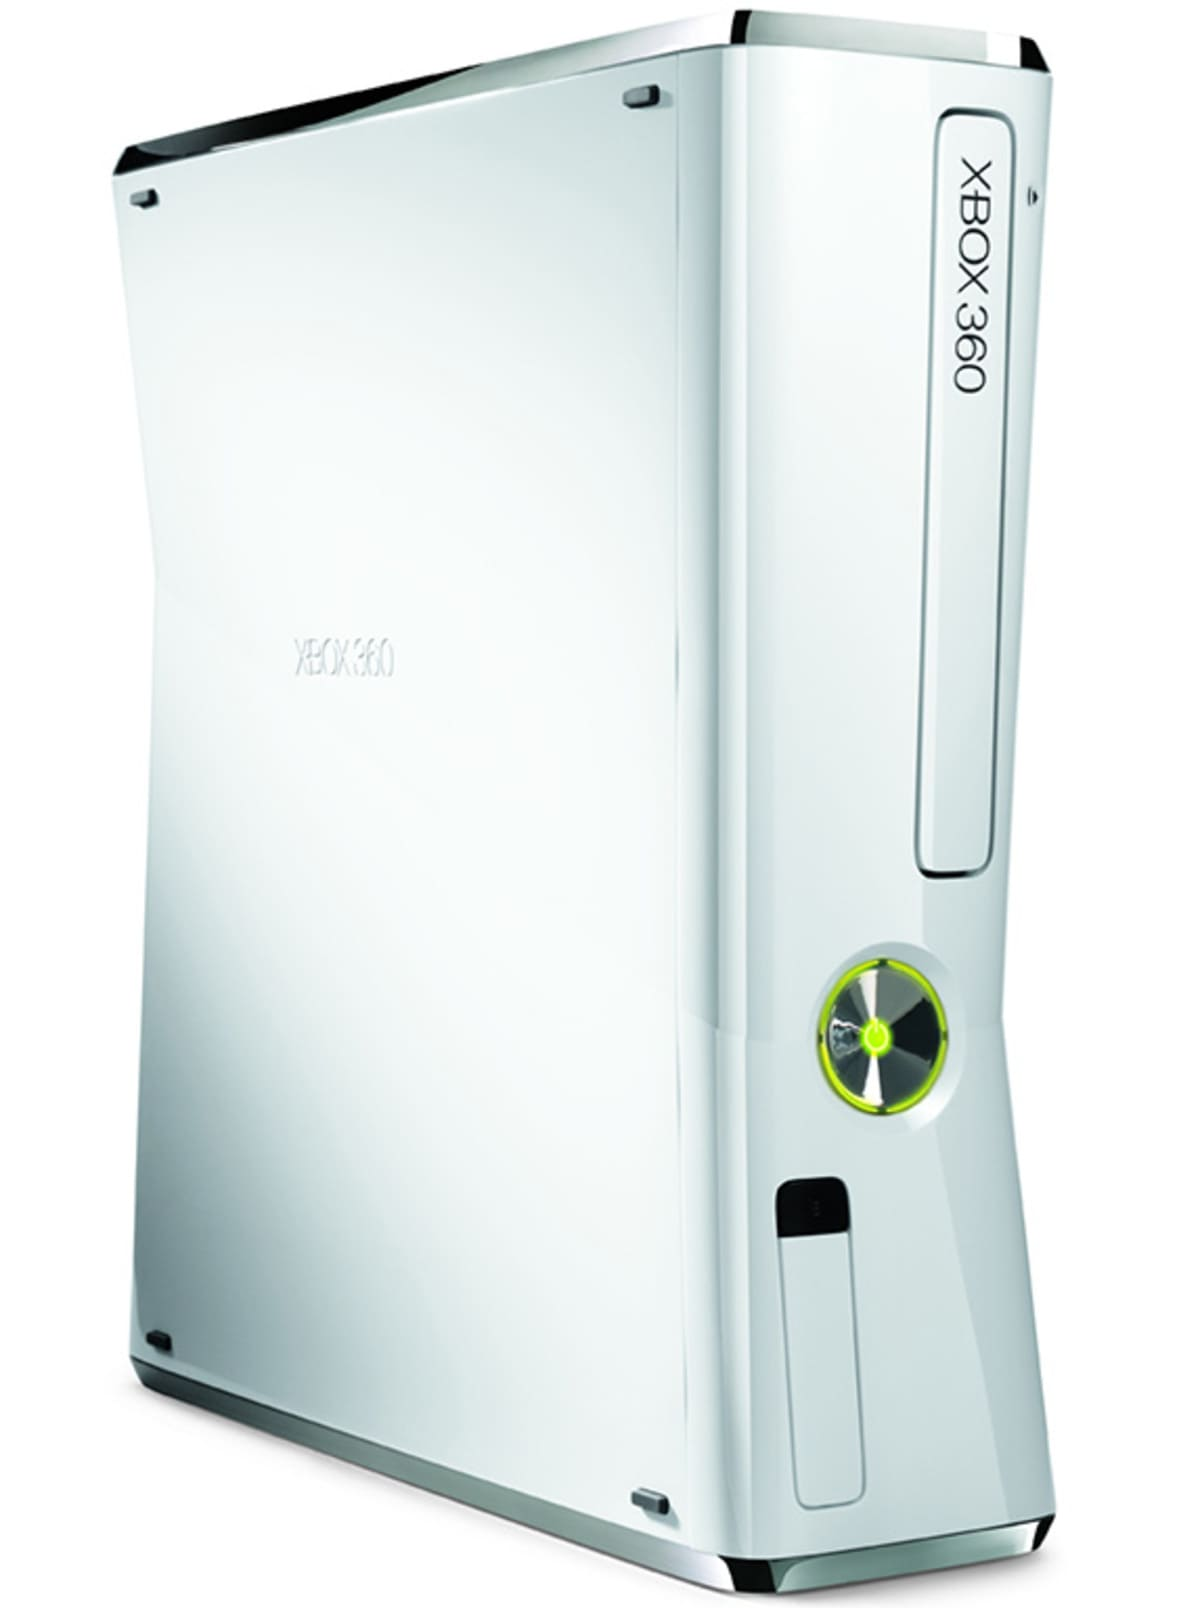 Xbox 360 y Kinect en color blanco 2 0